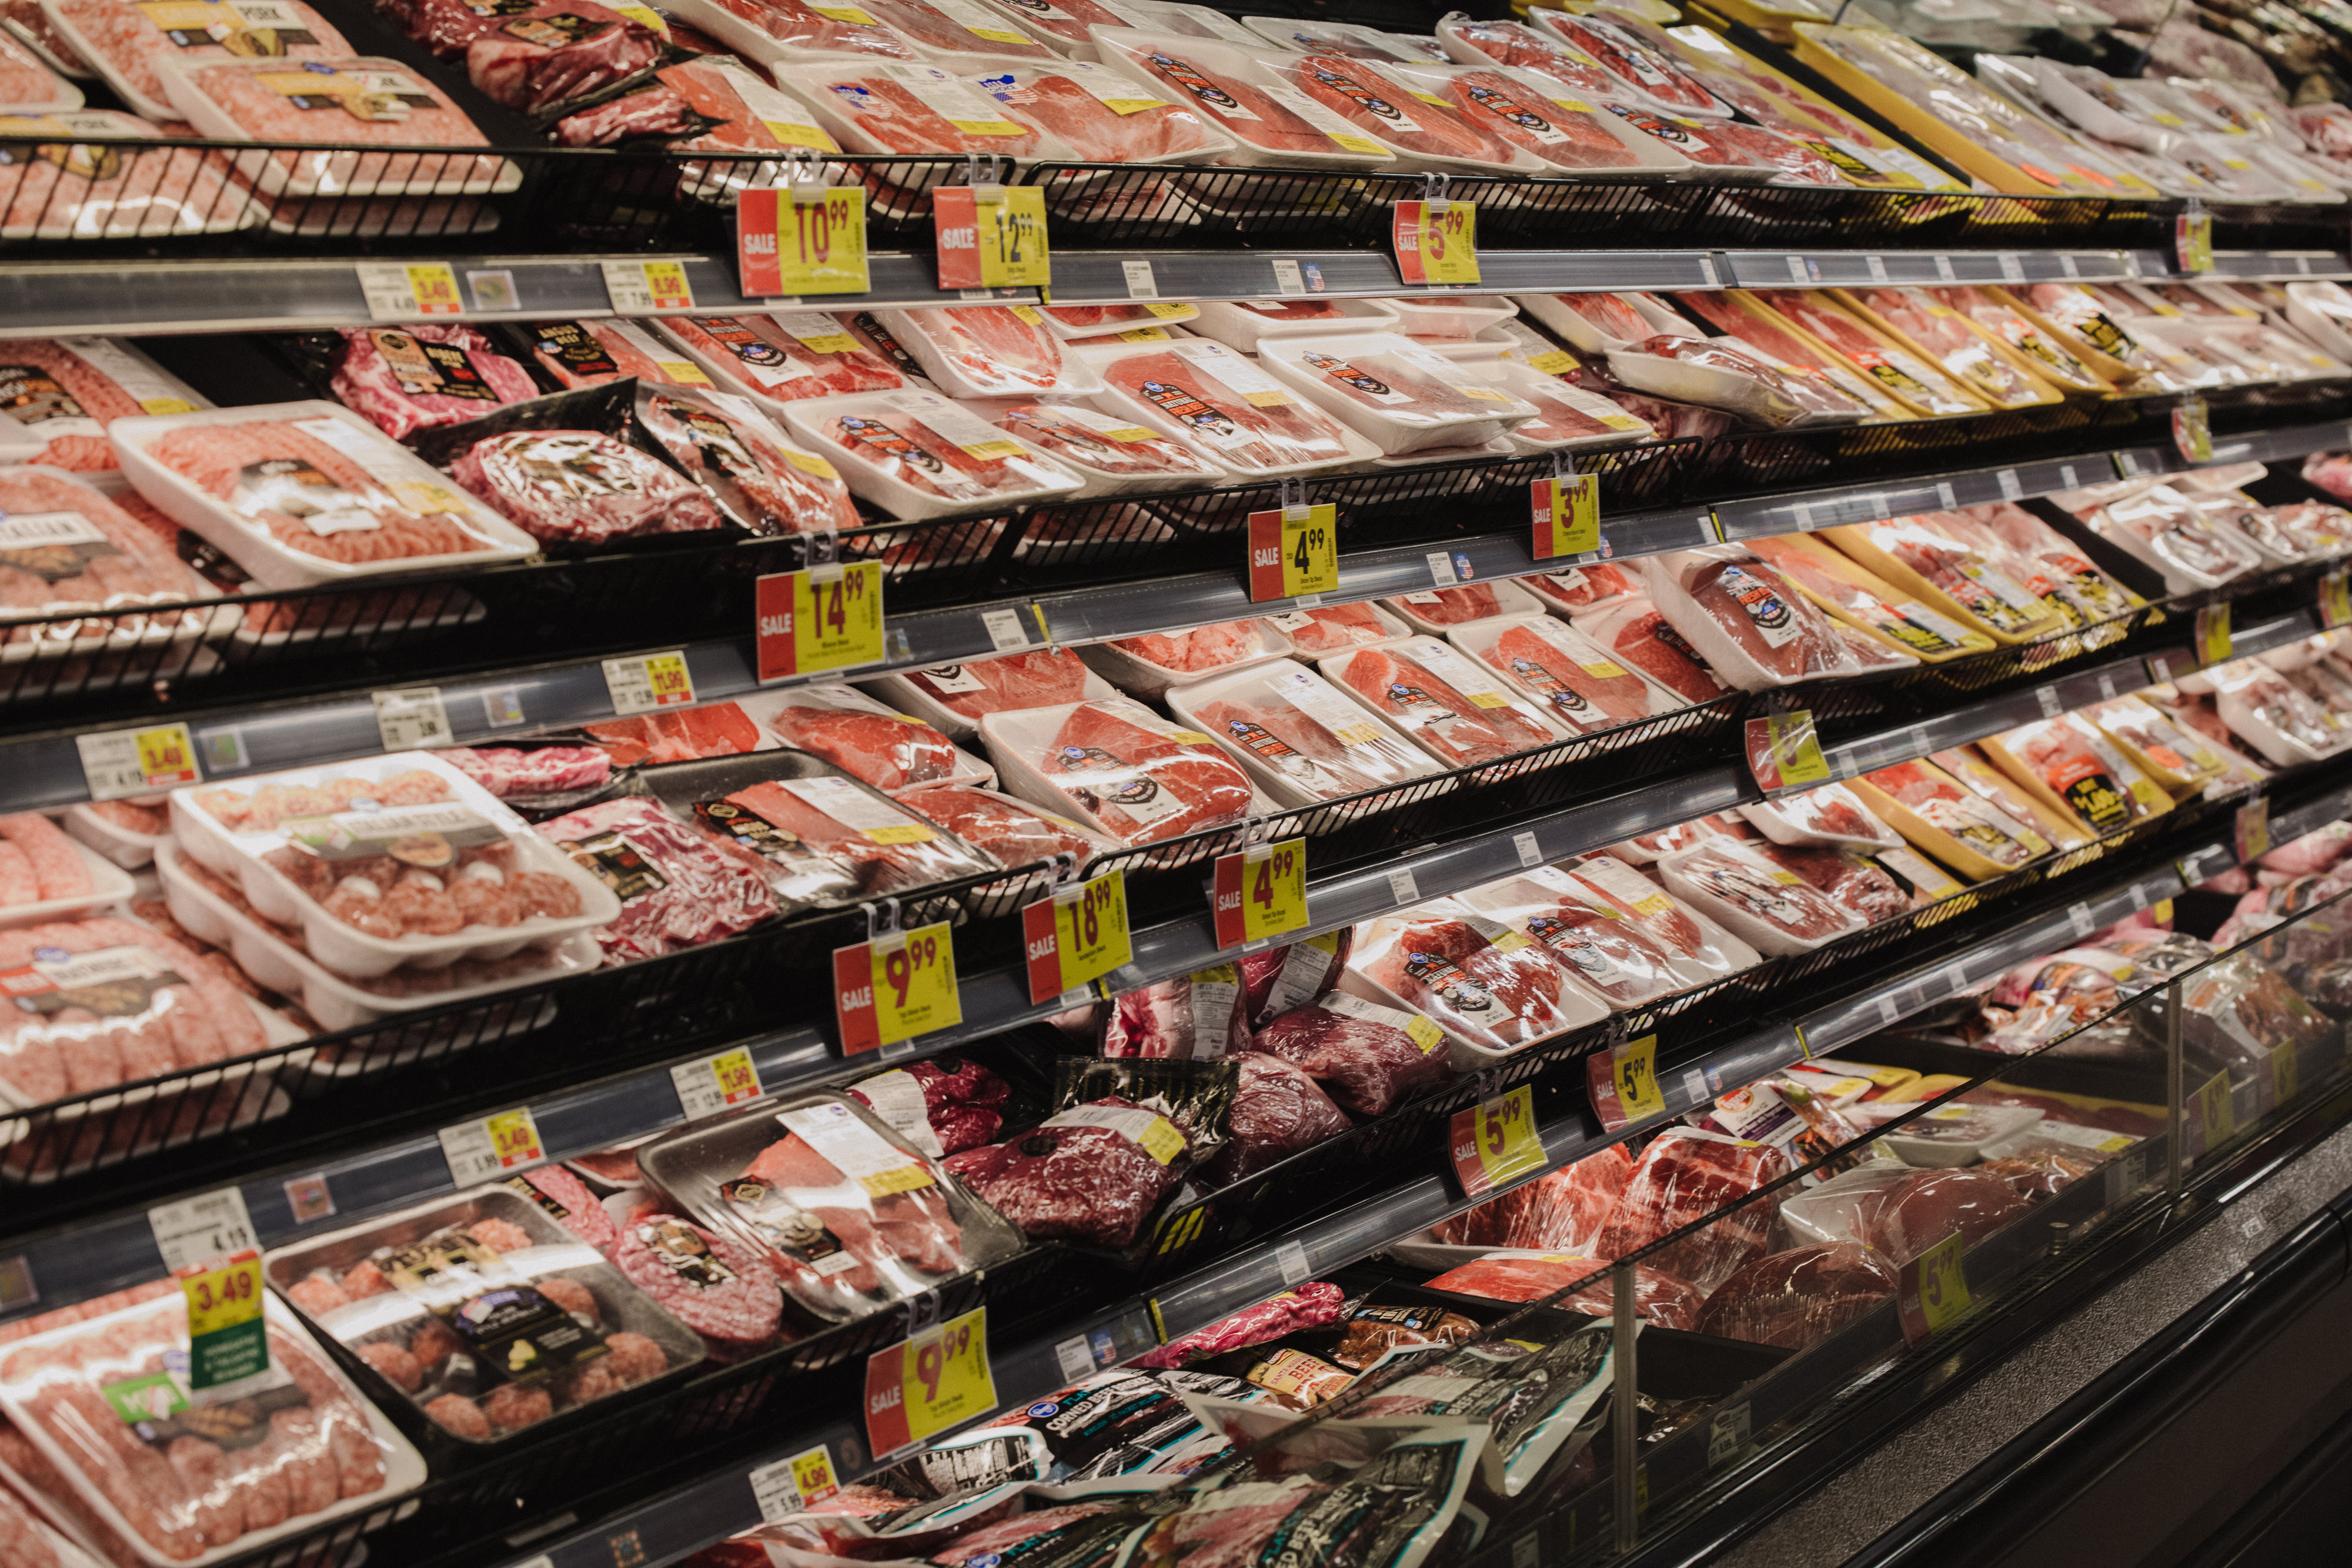 Meat for sale at Kroger Marketplace in Versailles, Kentucky, U.S., on Tuesday, Nov. 24, 2020.